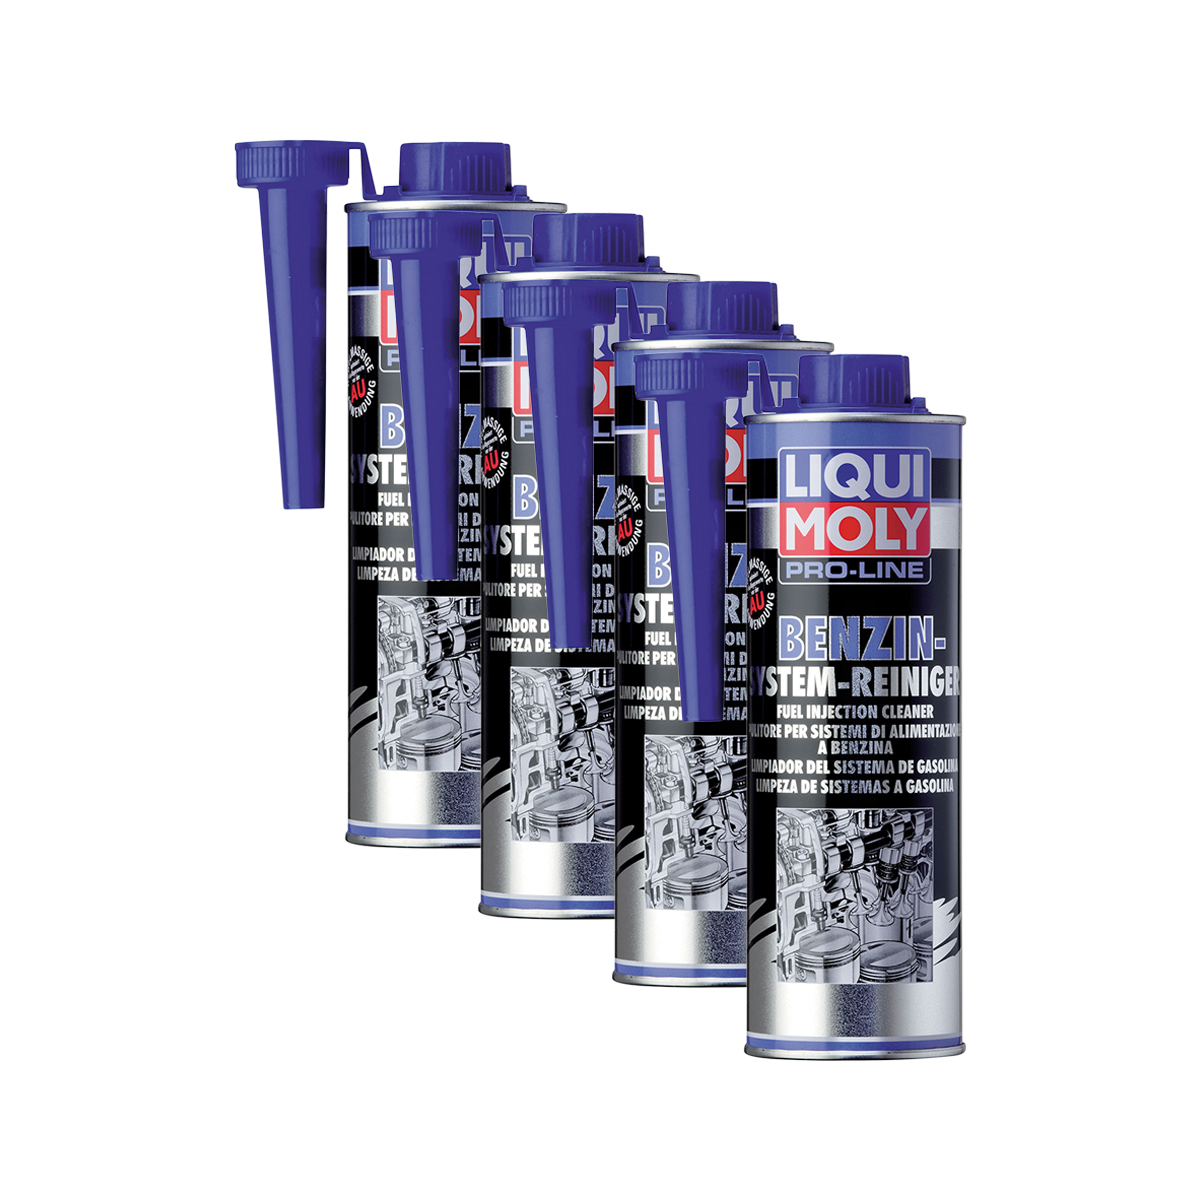 4x liqui moly 5153 pro line benzin system reiniger kraftstoff additiv 500ml ebay. Black Bedroom Furniture Sets. Home Design Ideas